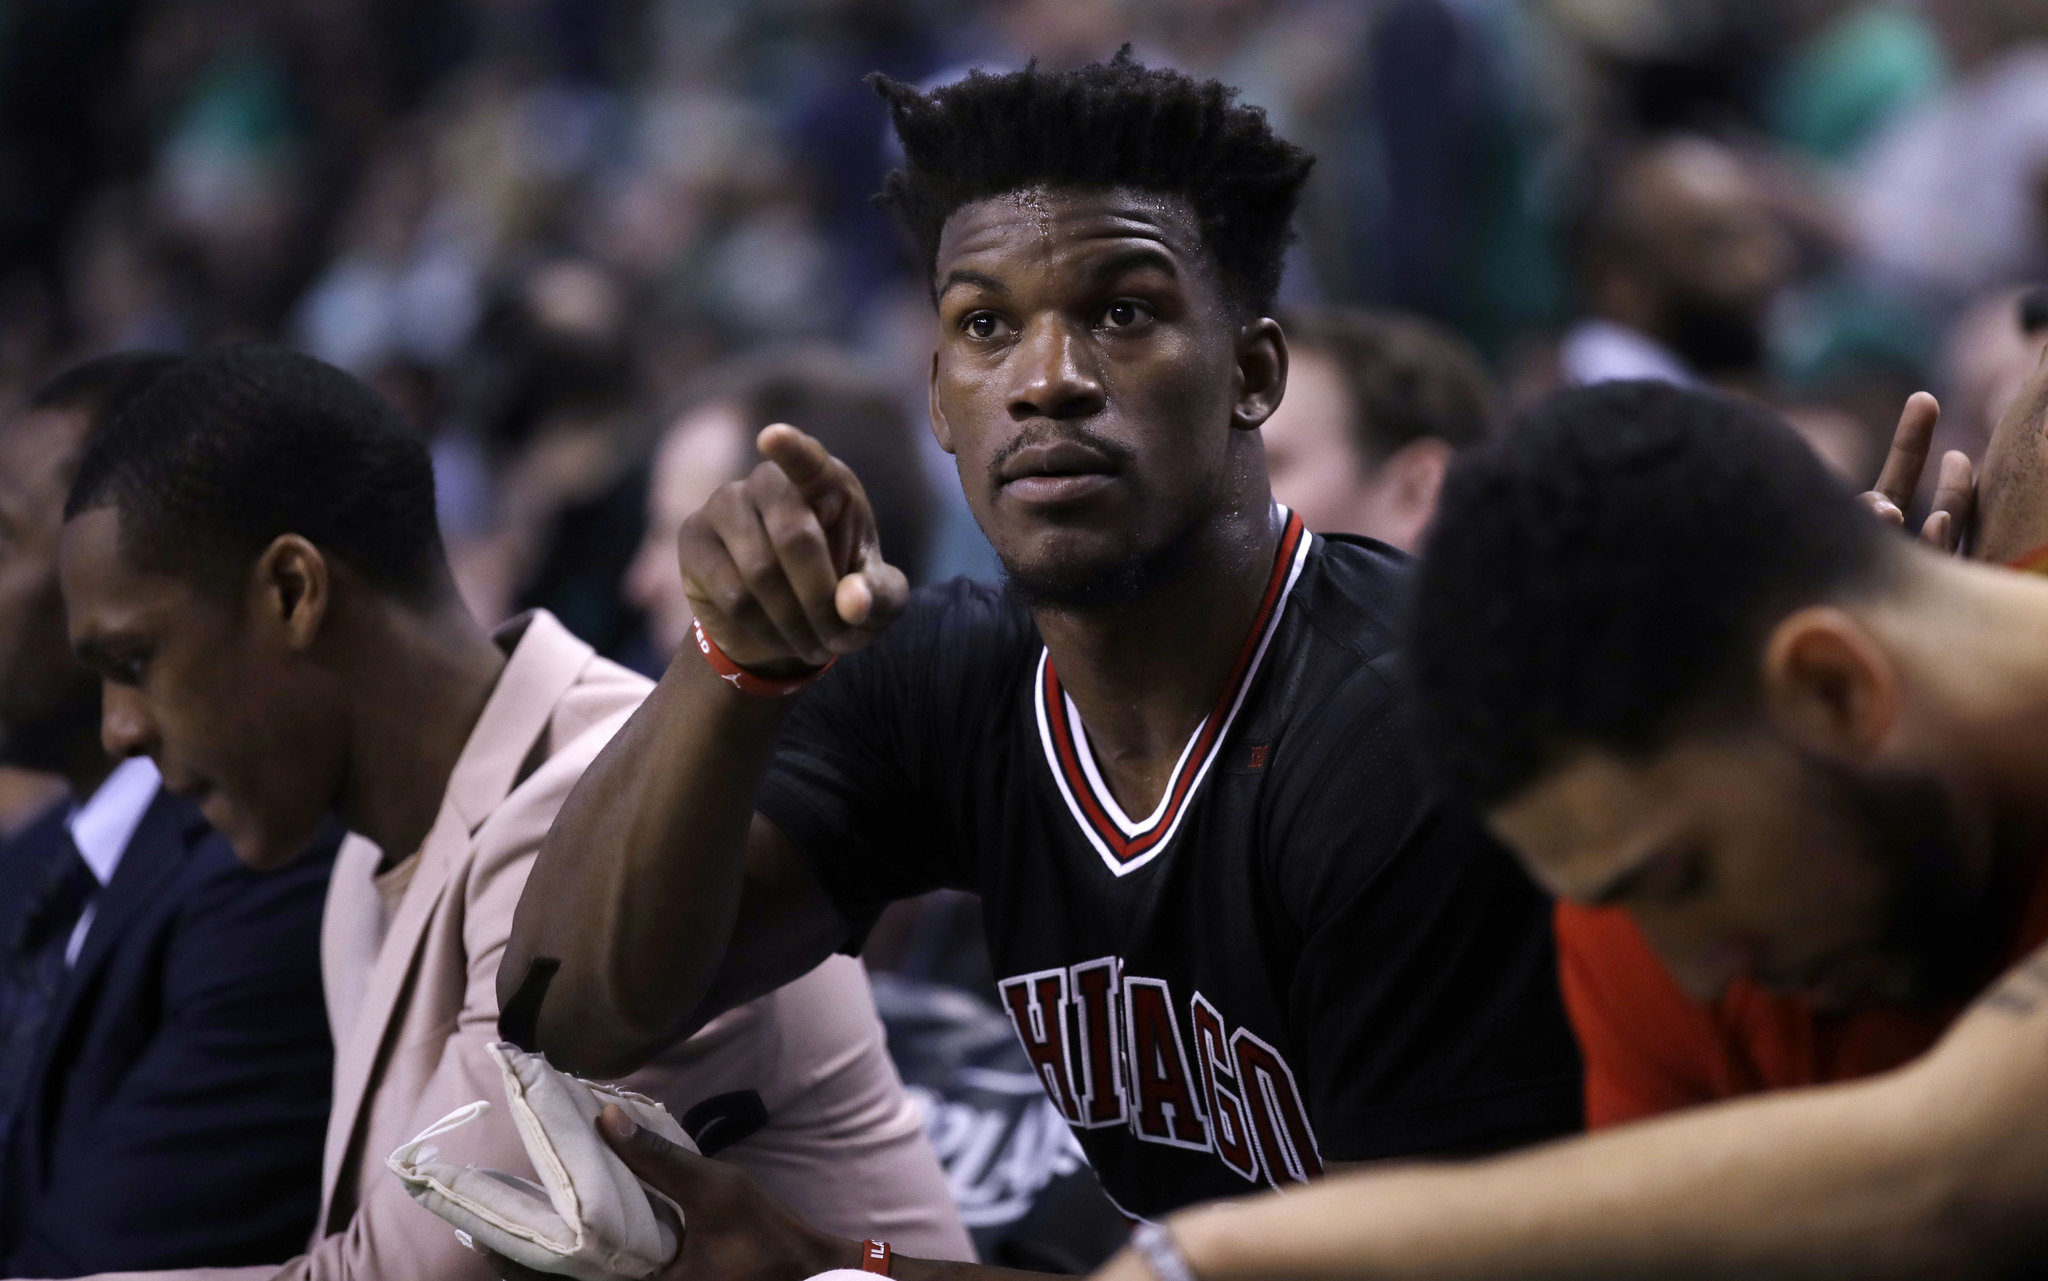 jimmy butler moves to timberwolves with sweet deal and knicks land ntilikina 2017 images